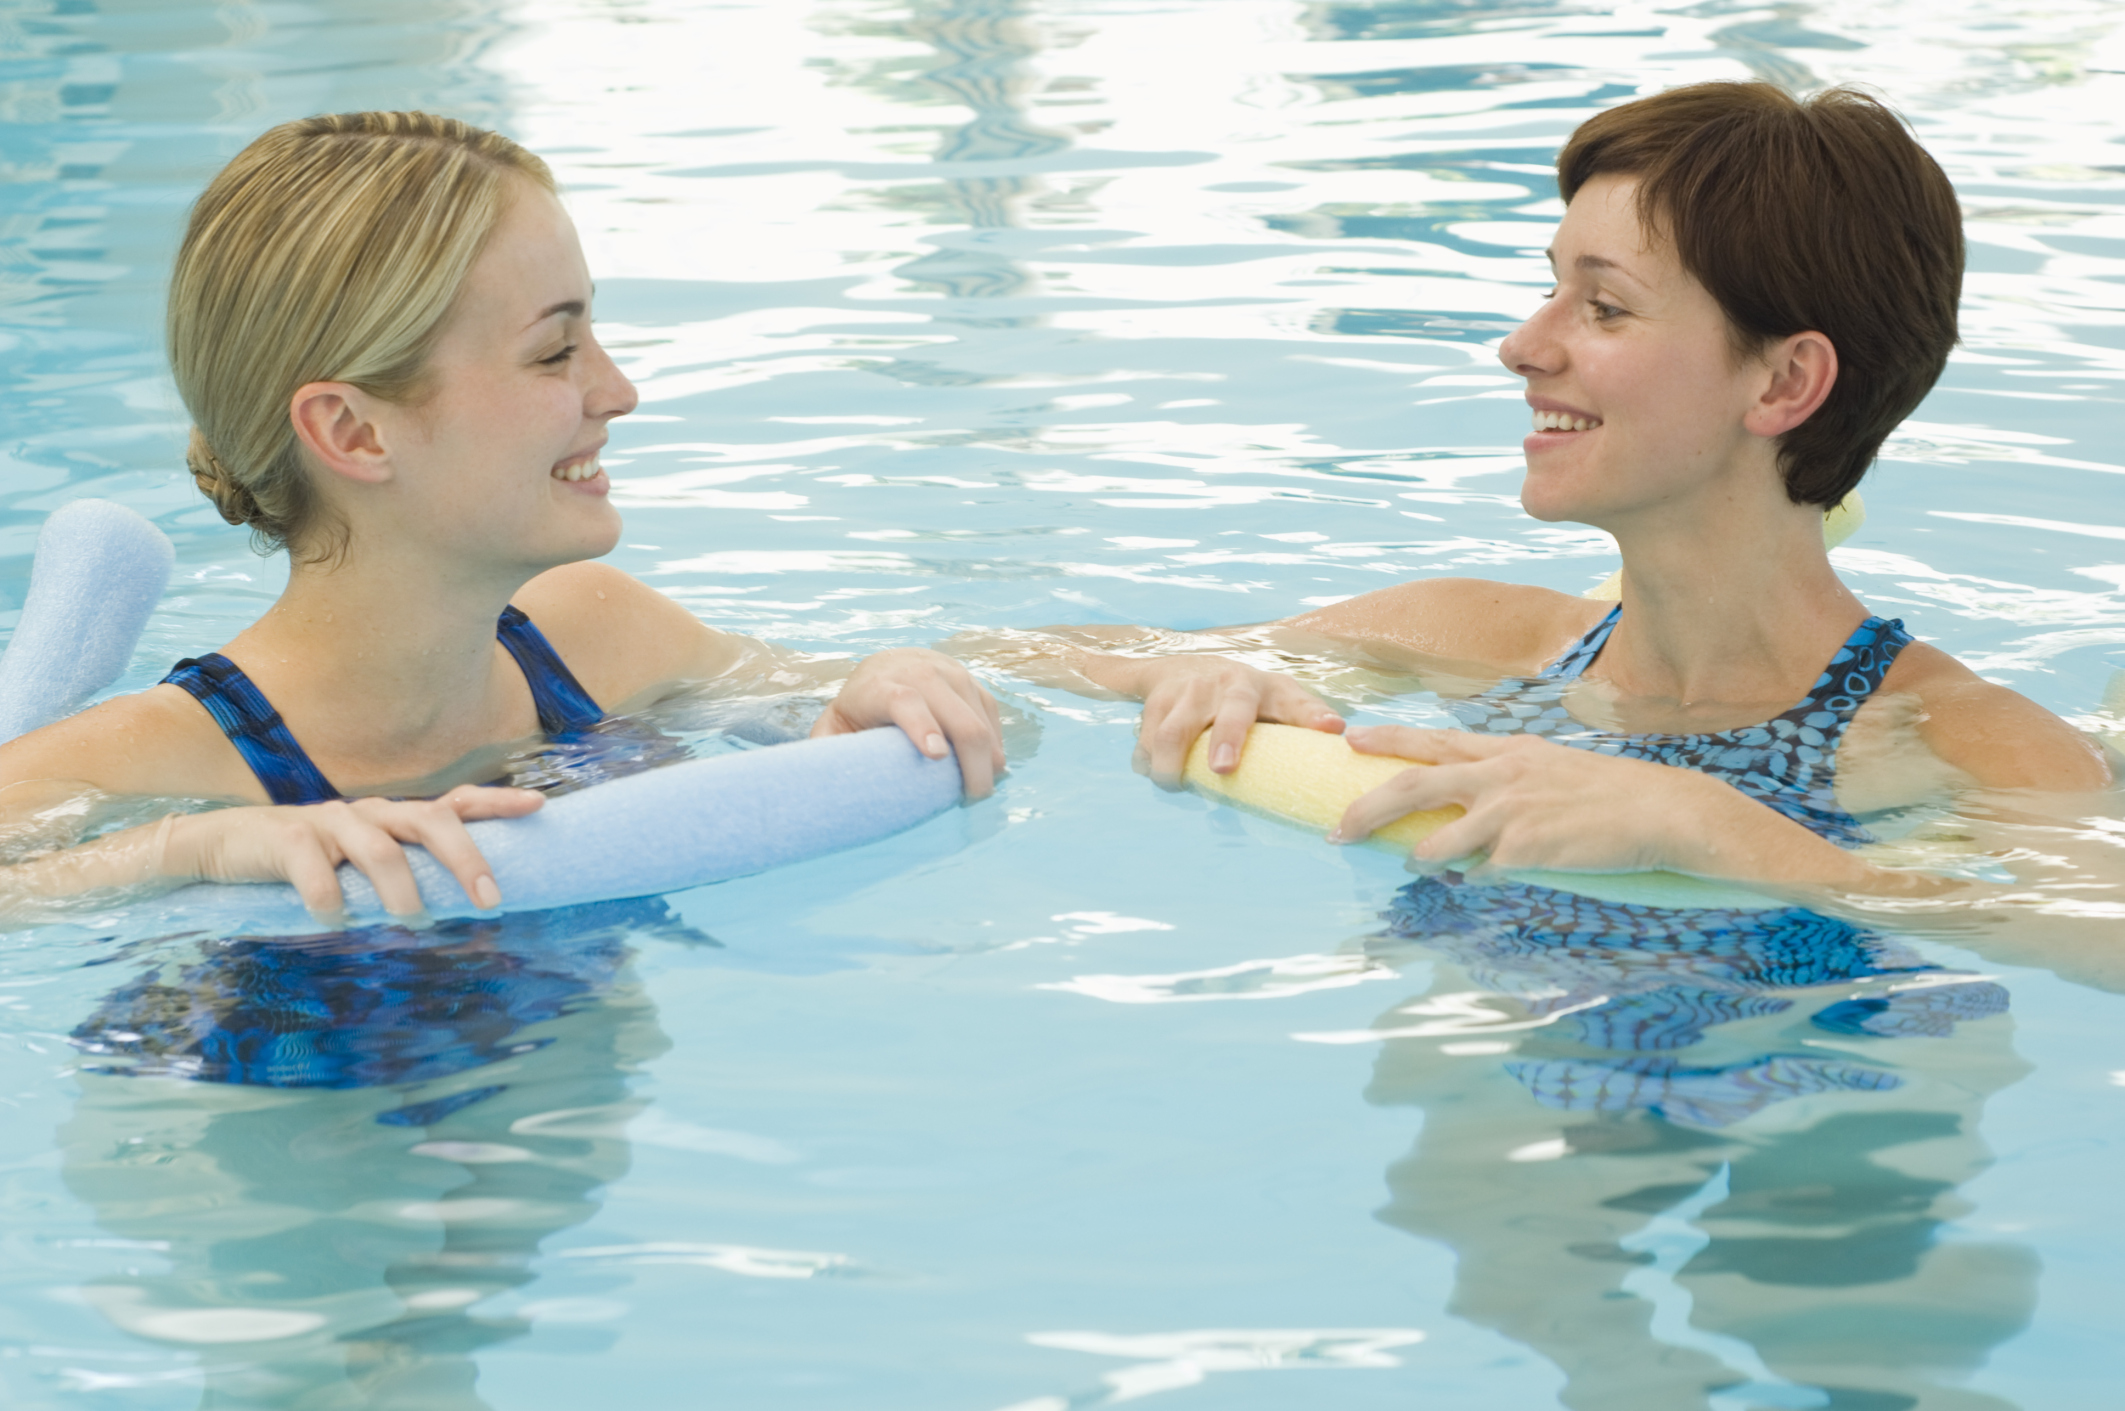 The Effects of Pool Chlorine on Healing Wounds | LEAFtv